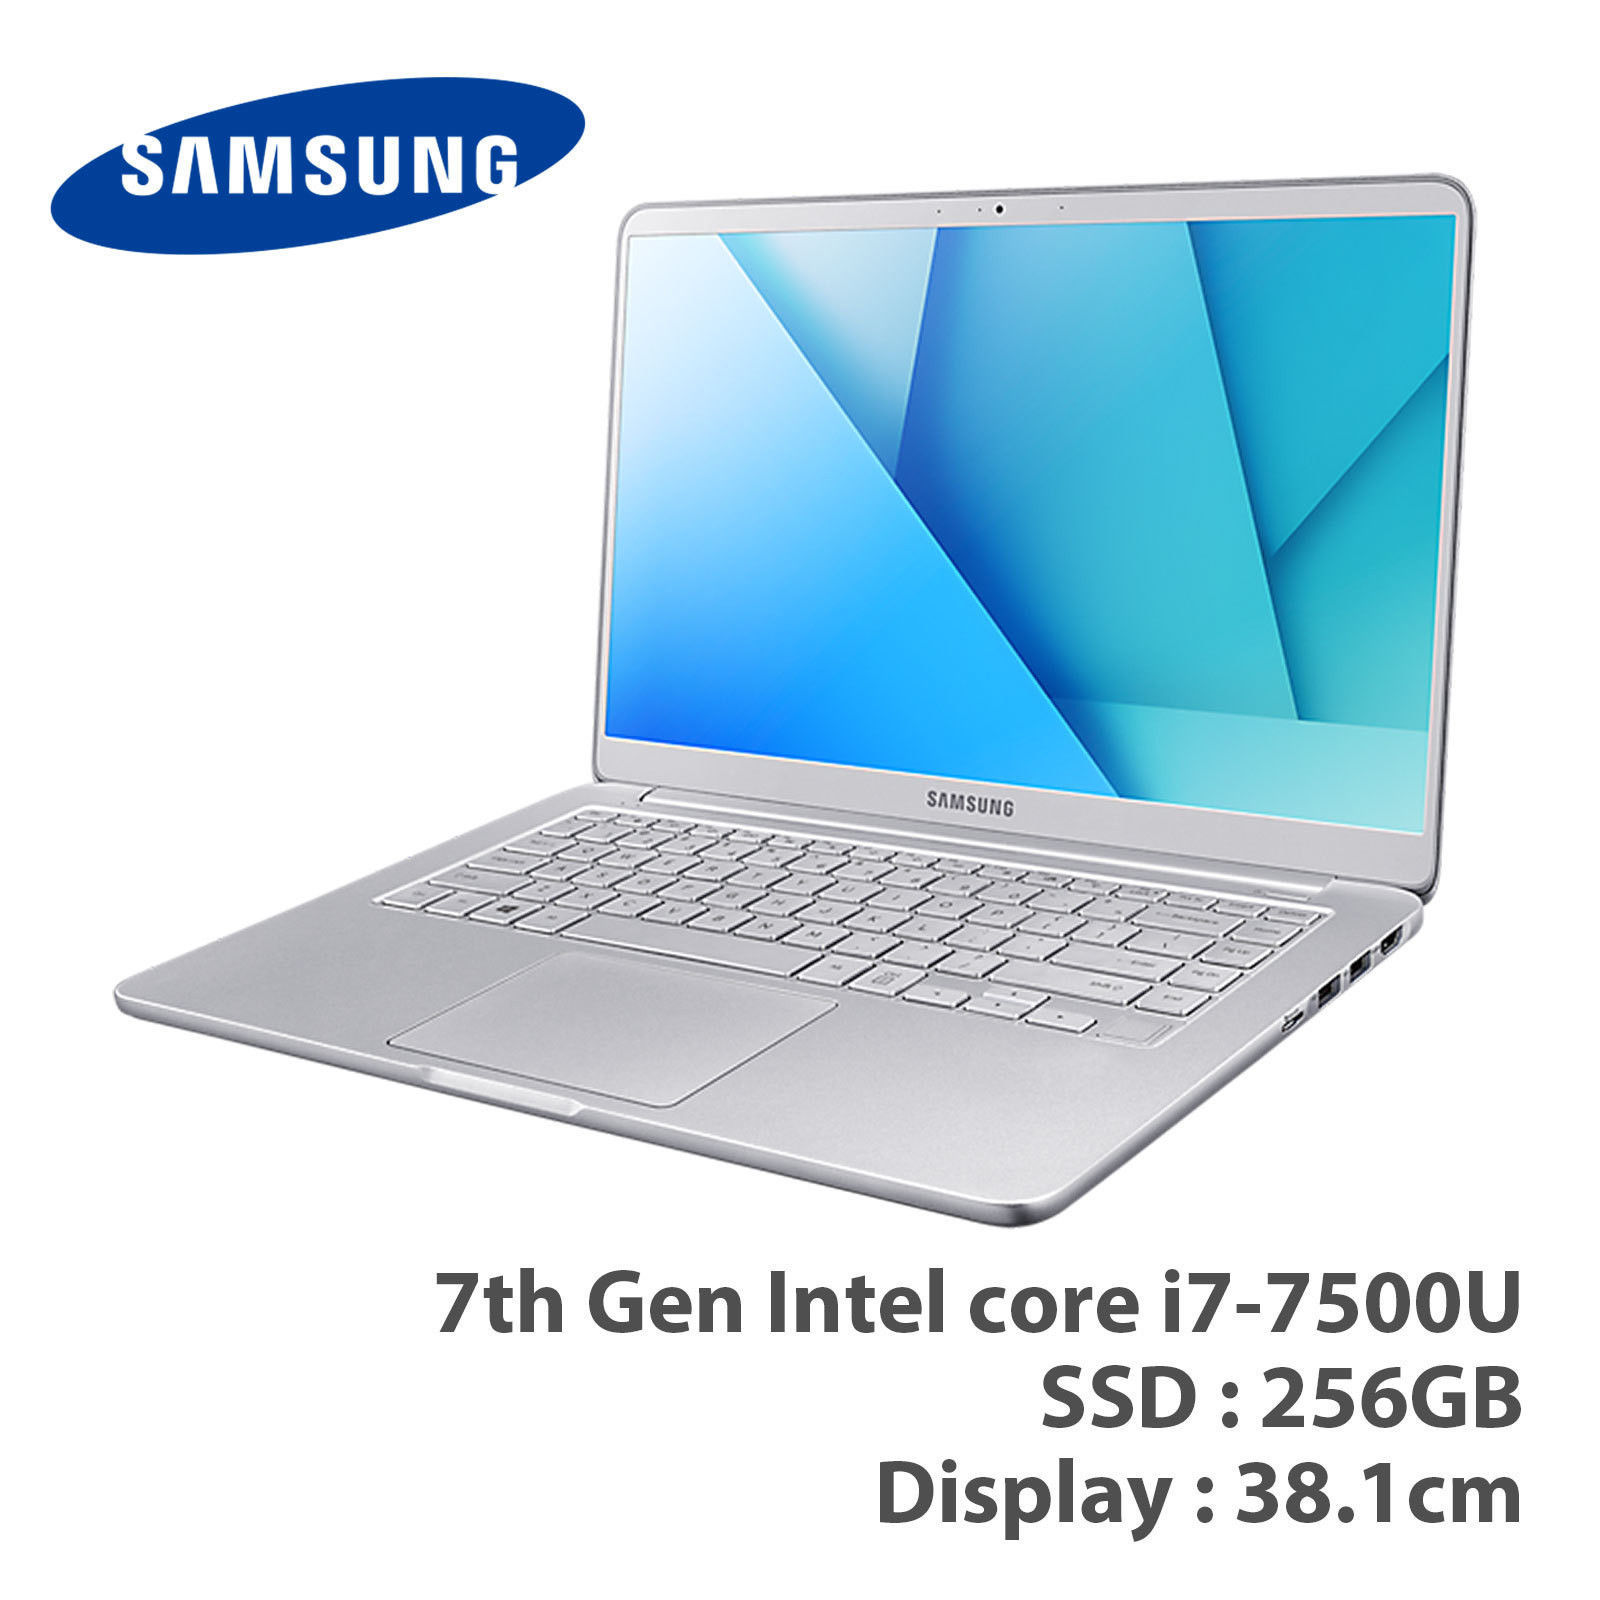 Samsung notebook in singapore - Fit To Viewer